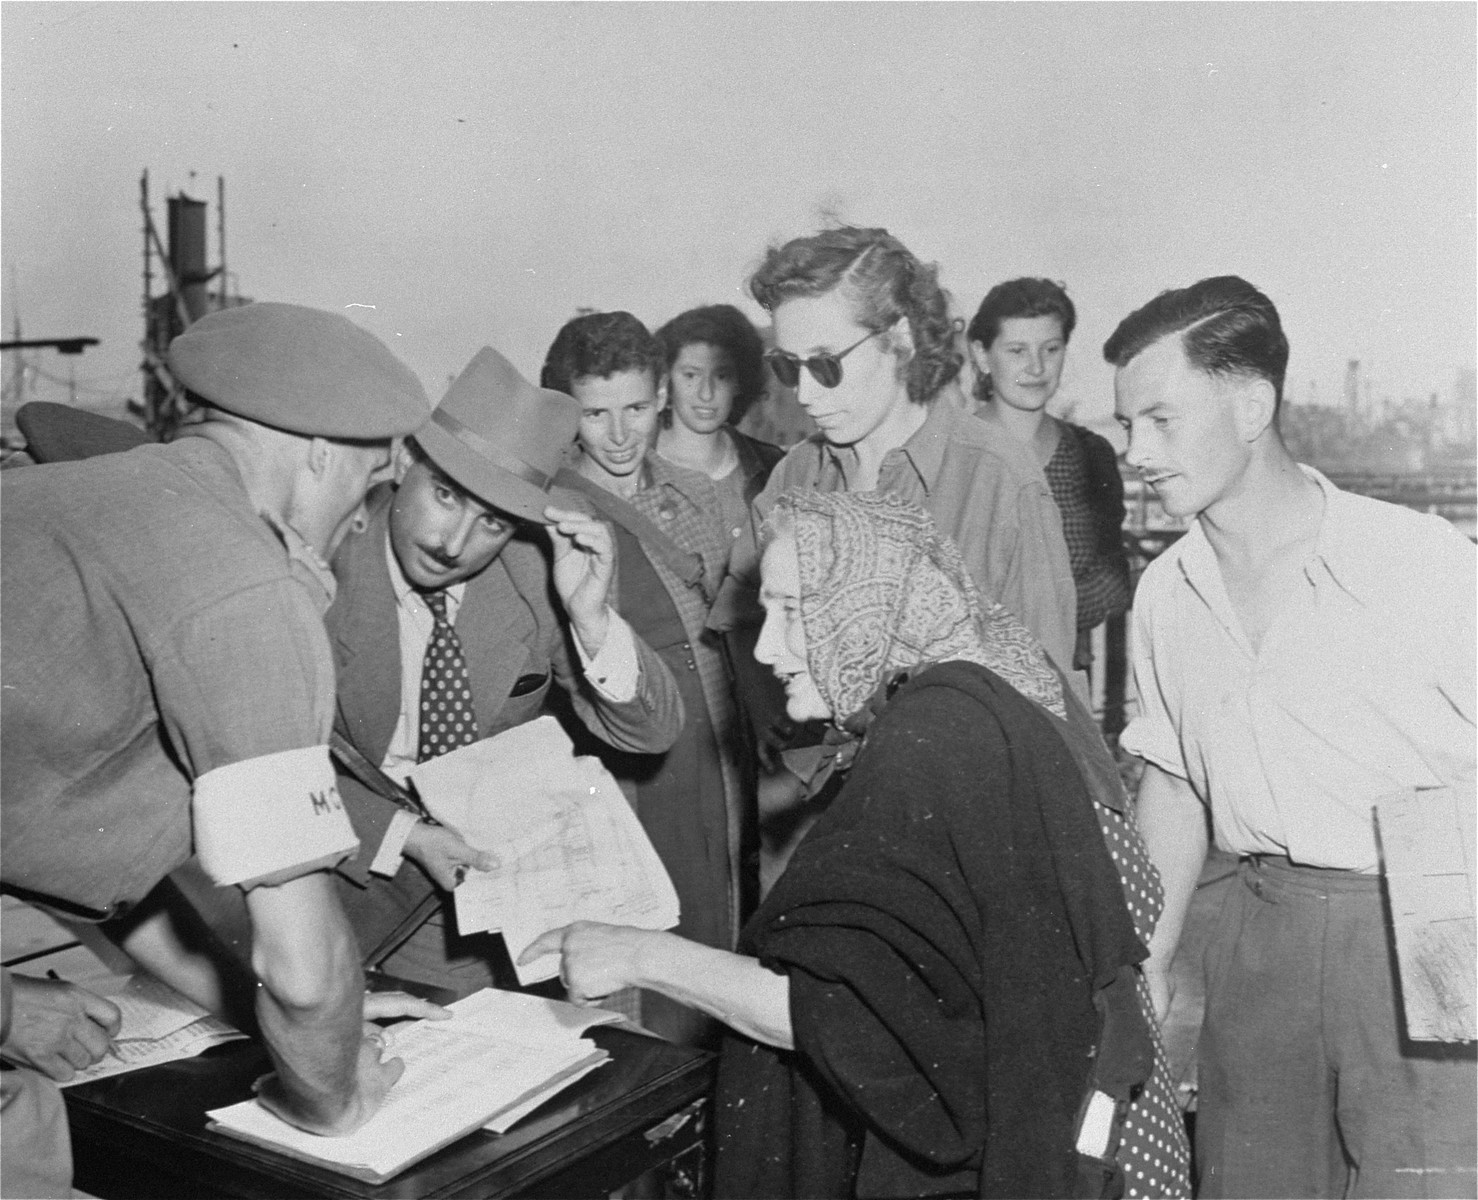 Jewish displaced persons fill out papers in the presence of British soldiers, prior to boarding ships for Palestine.